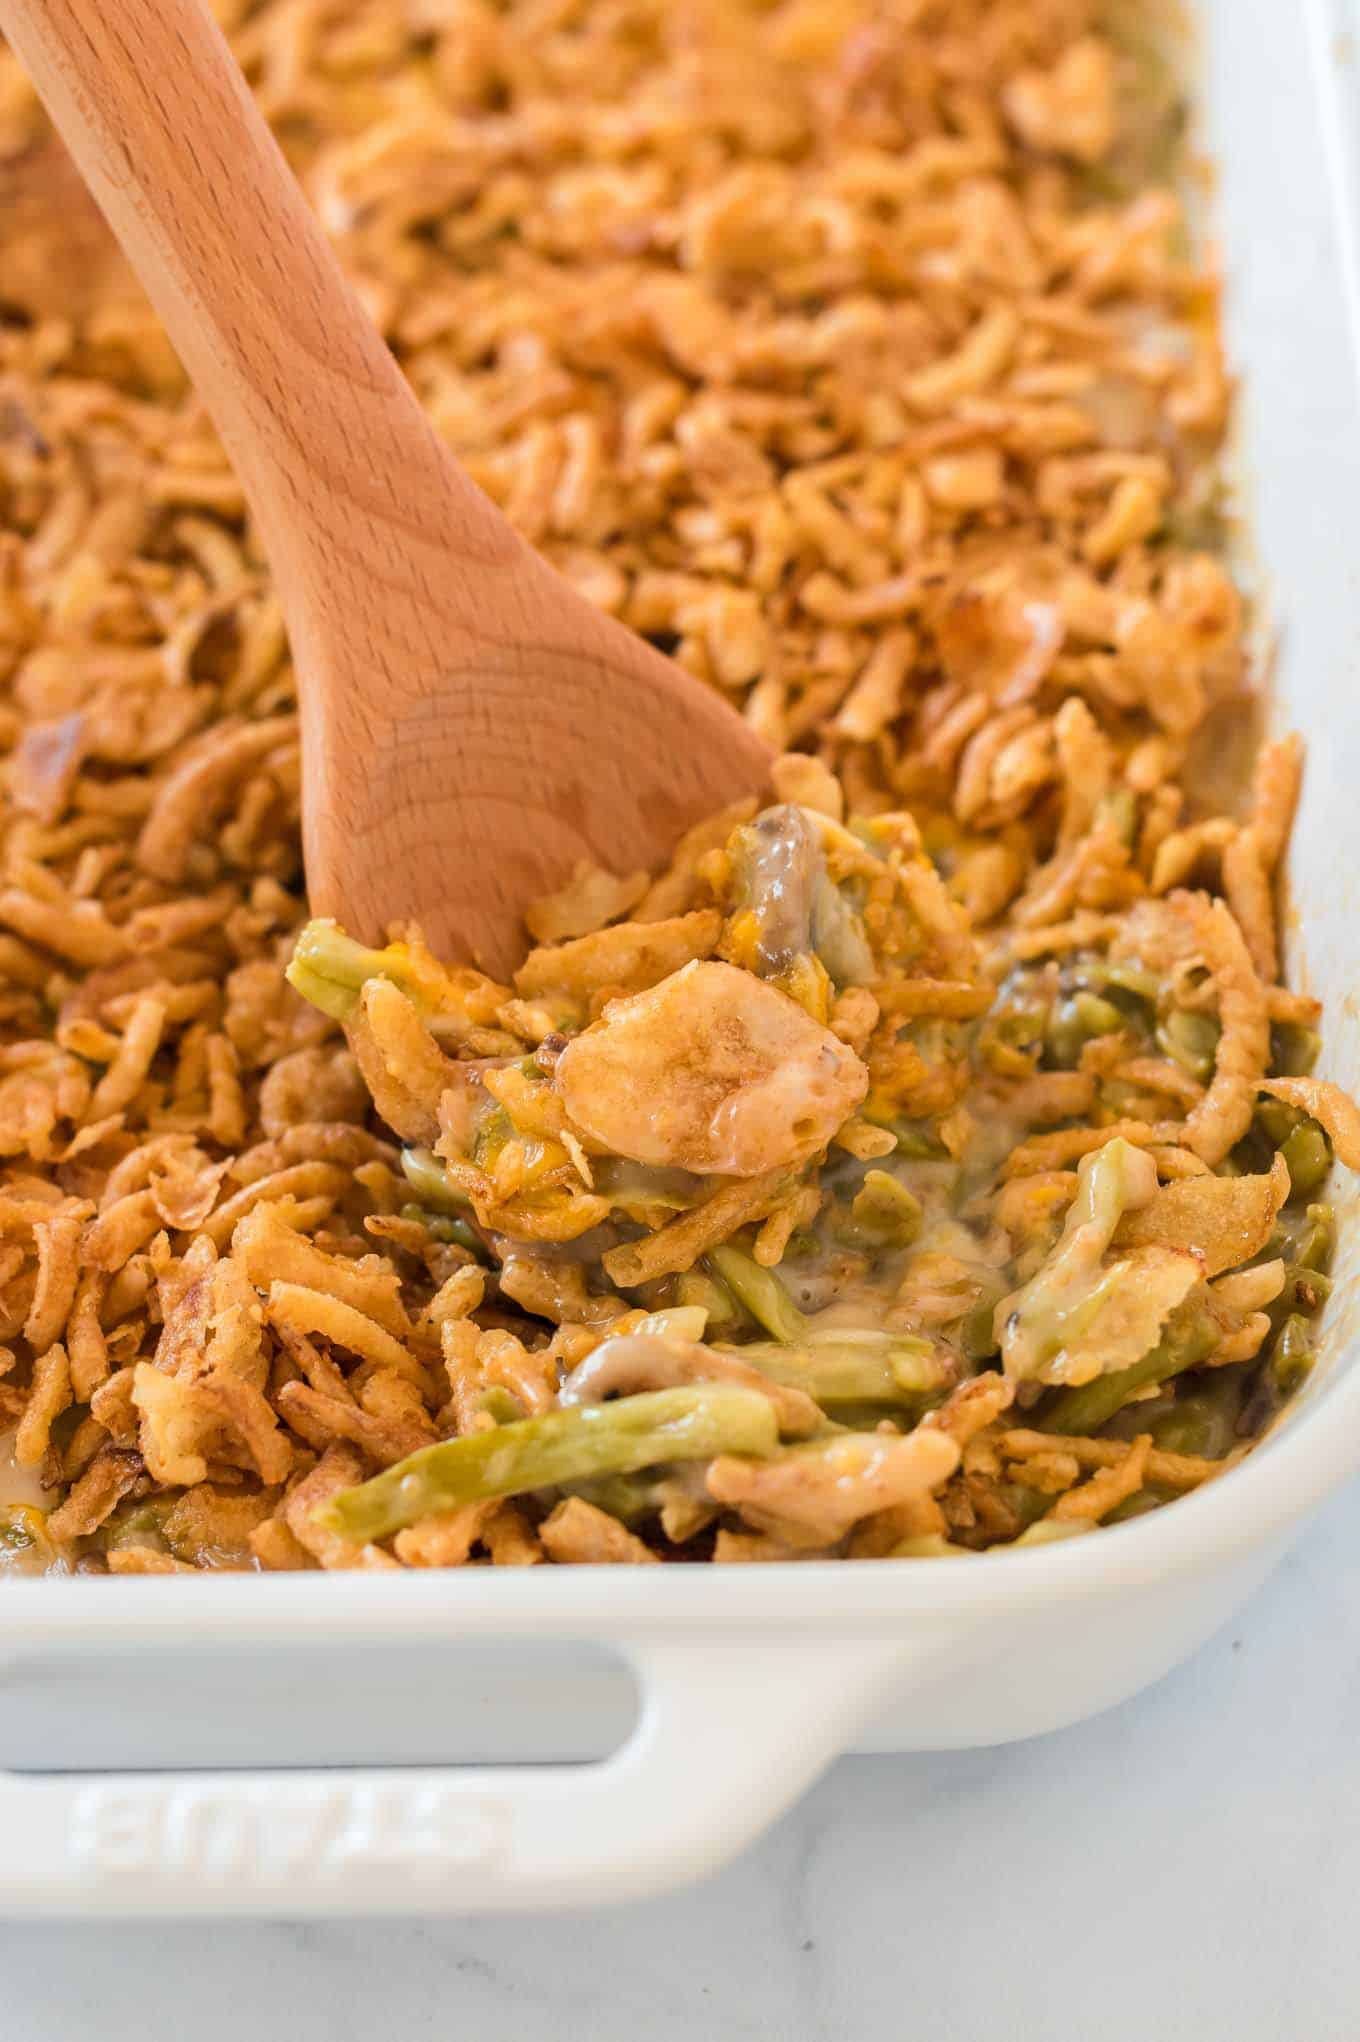 green bean casserole with a wooden spoon taking a scoop out